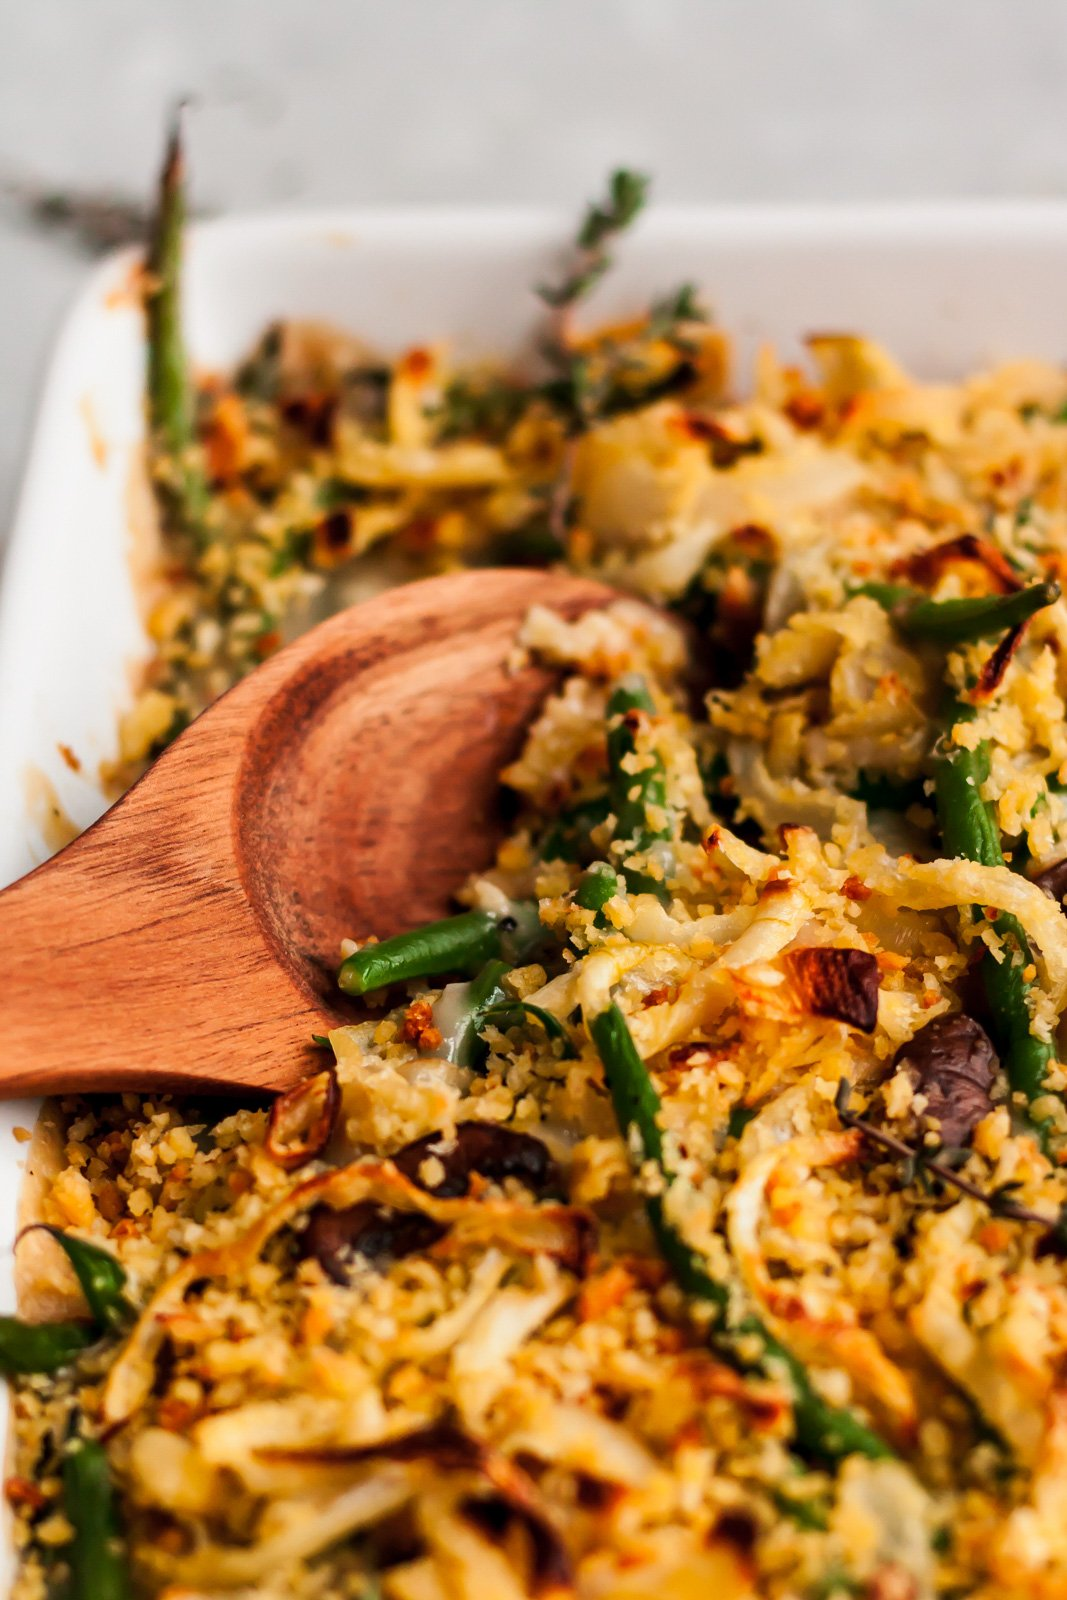 healthy green bean casserole in a baking dish with a wooden spoon